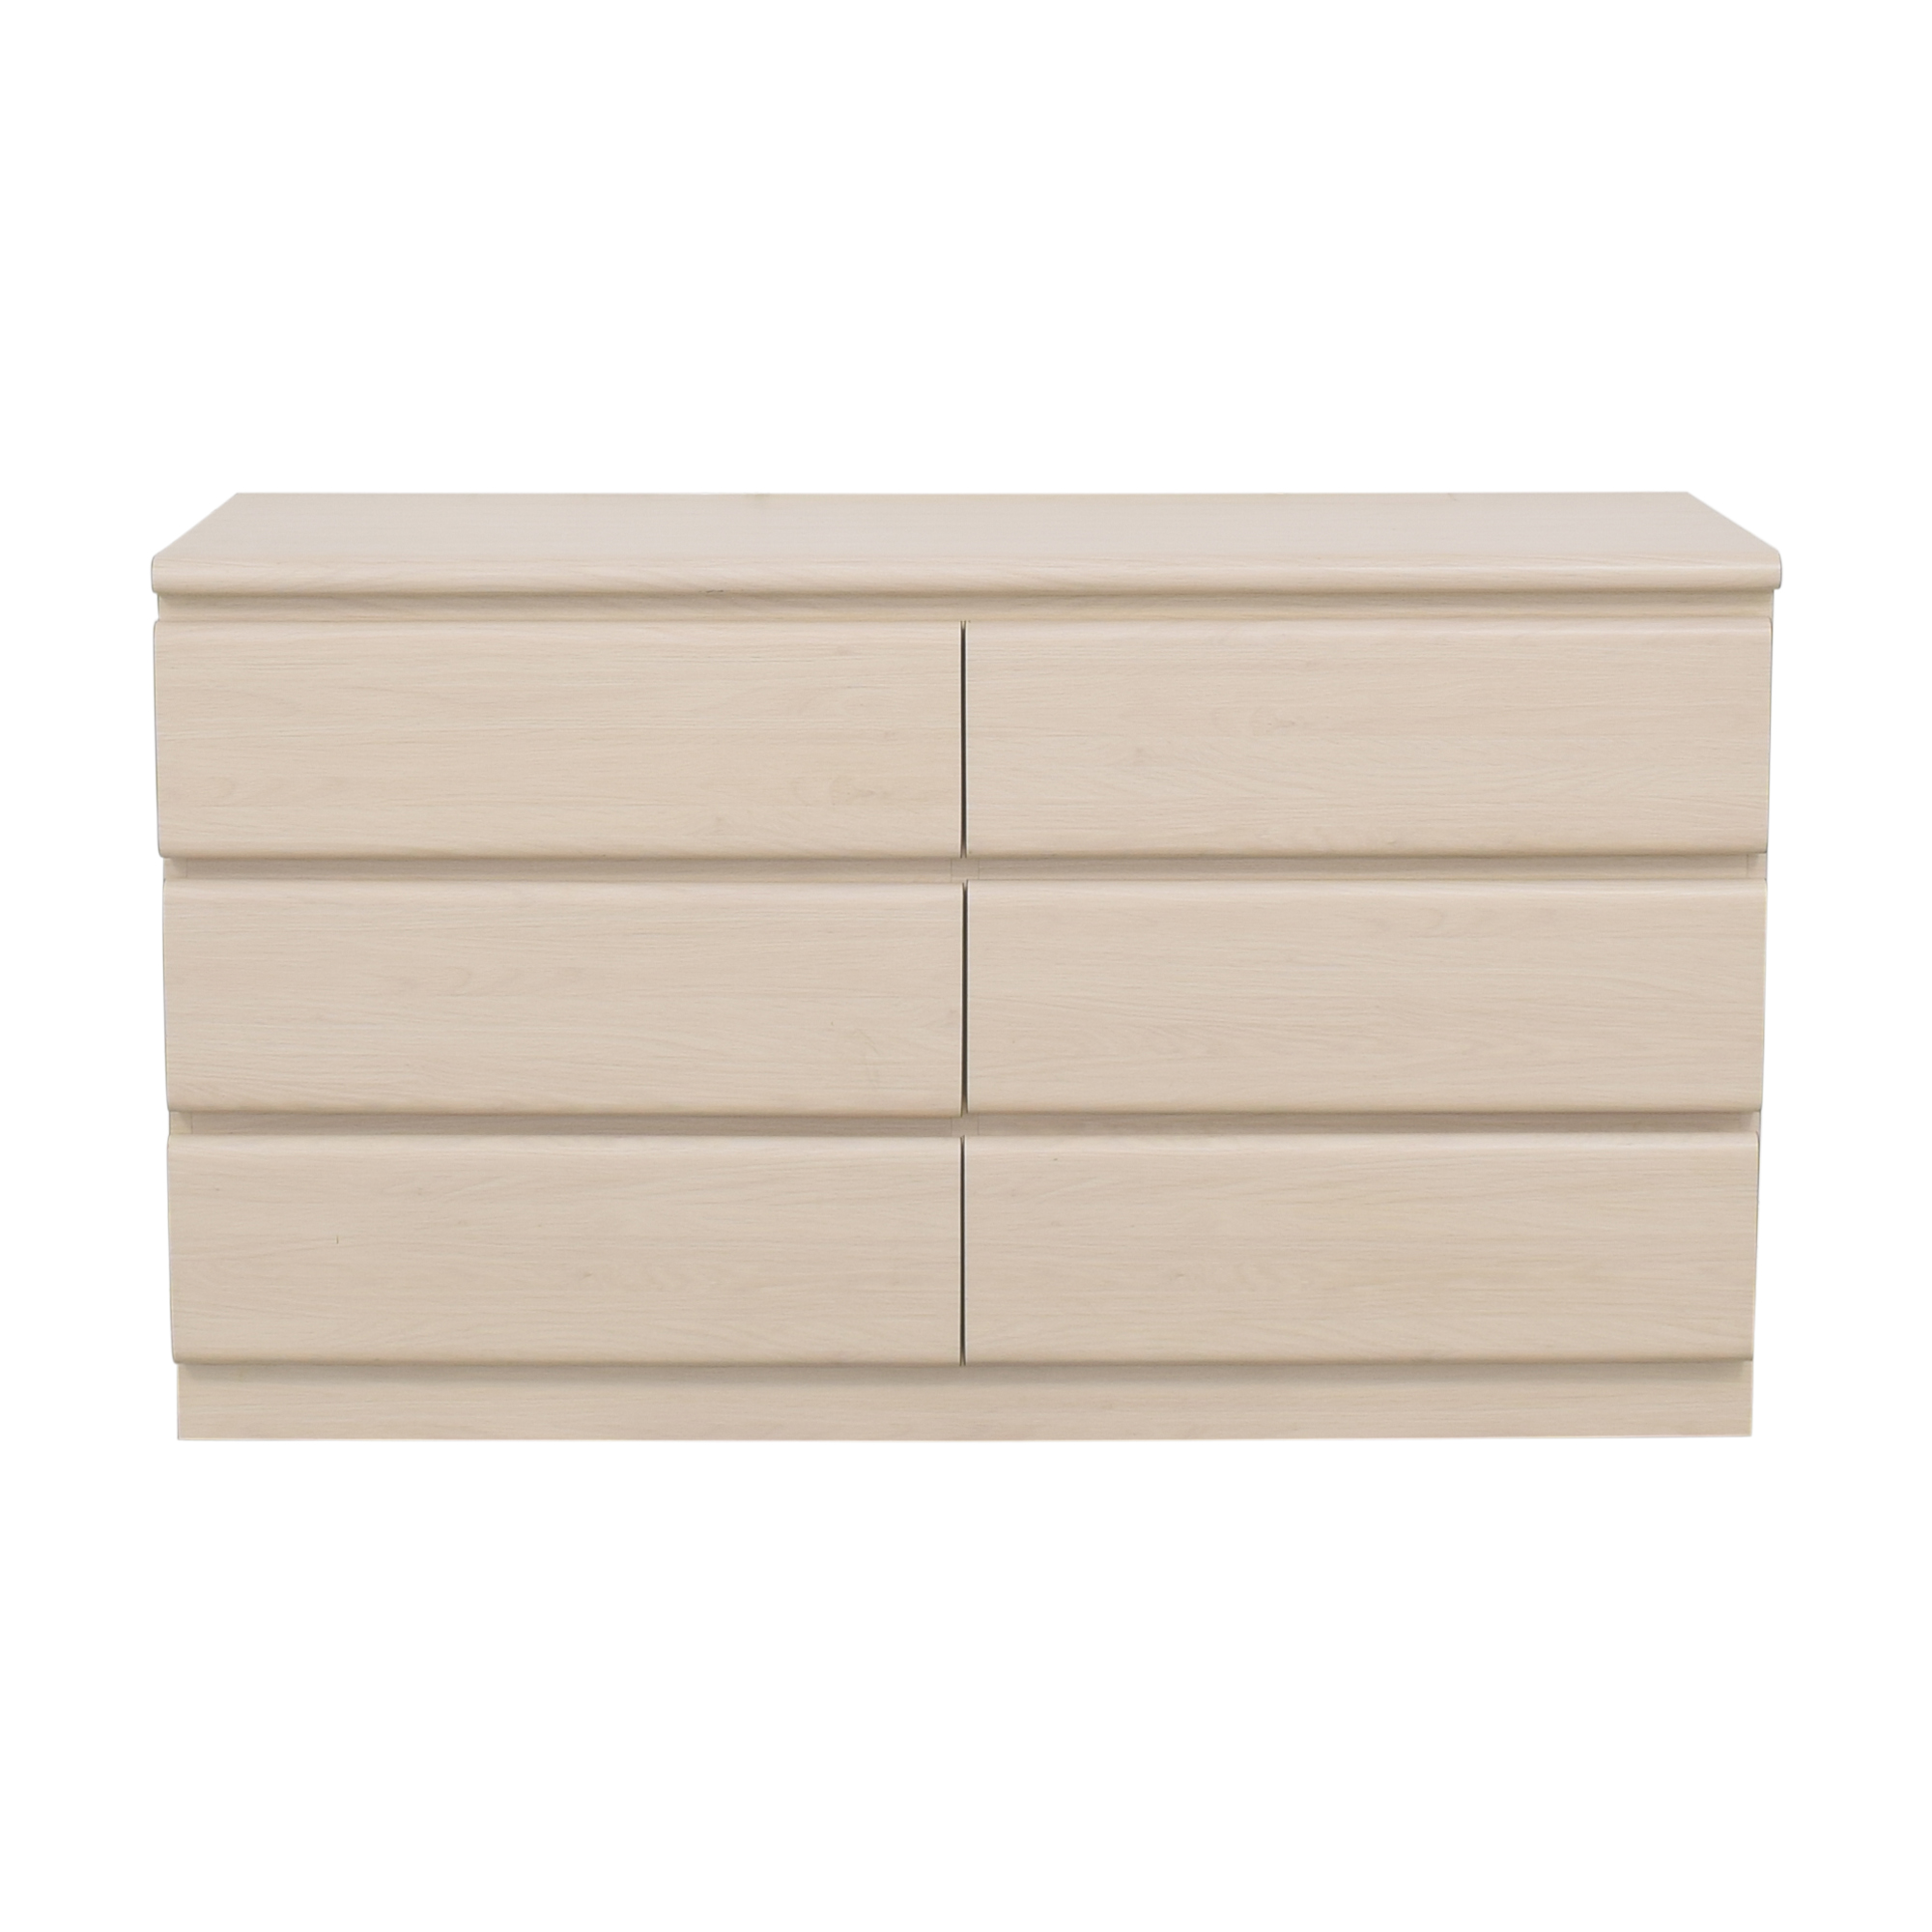 Rooms To Go Double Dresser sale